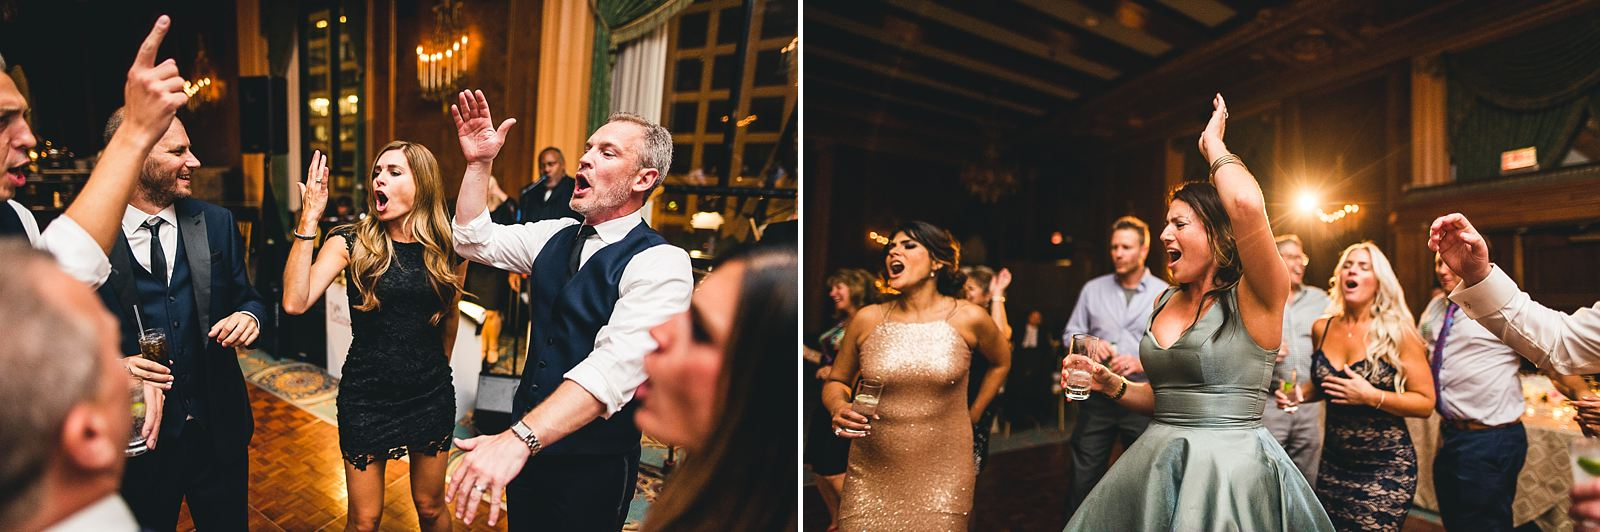 61 fun wedding photos - Intercontinental Chicago Hotel Wedding // Lili + Danny